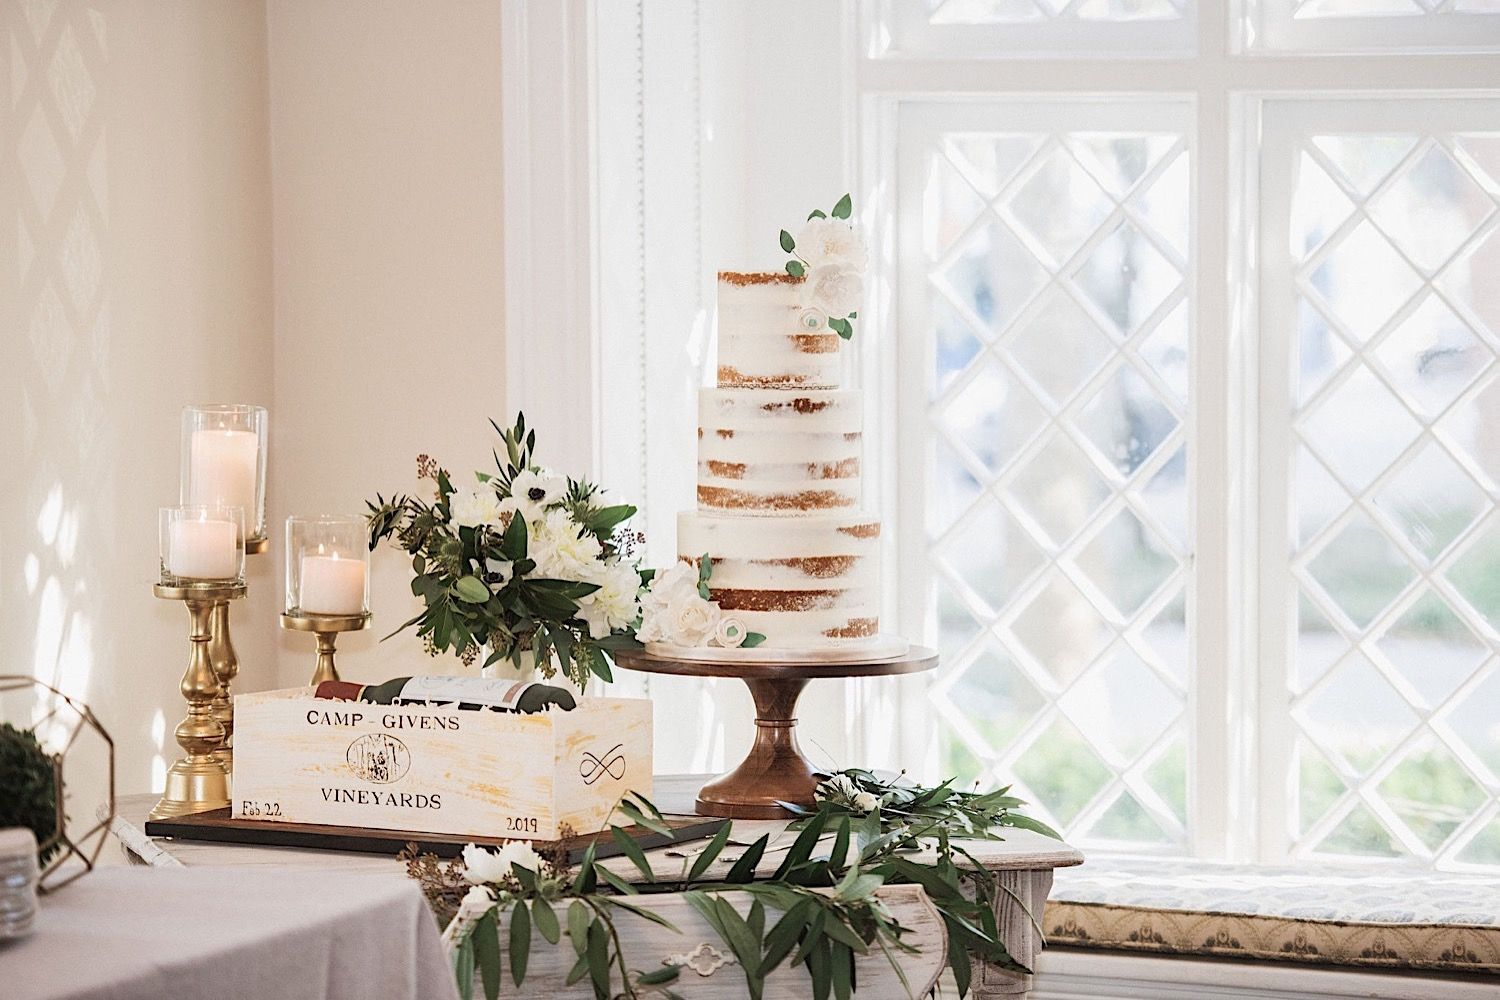 wedding cake in the window at the orlo